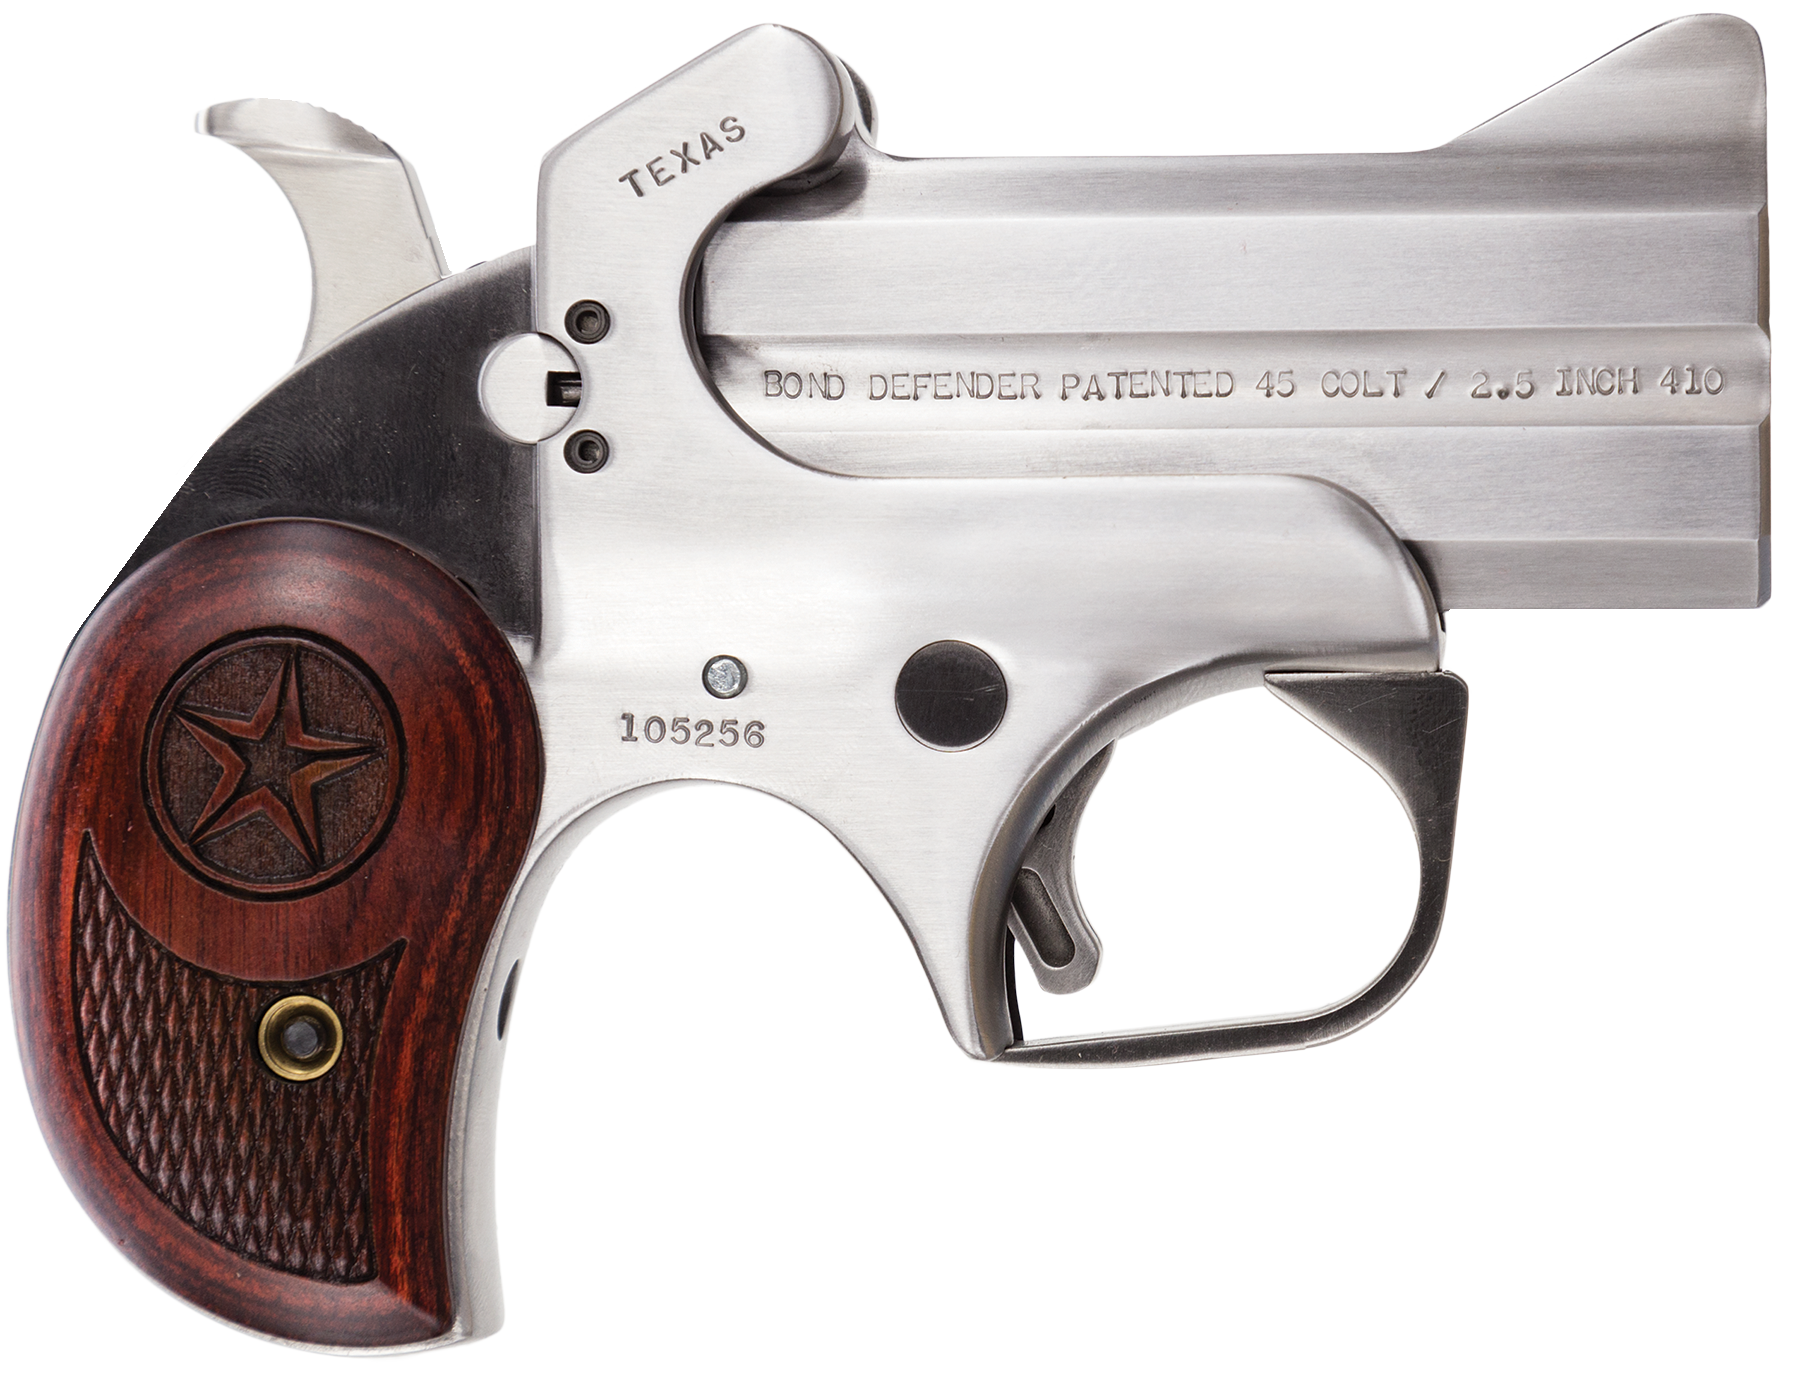 Bond Arms BATD Texas Defender 22LR 3